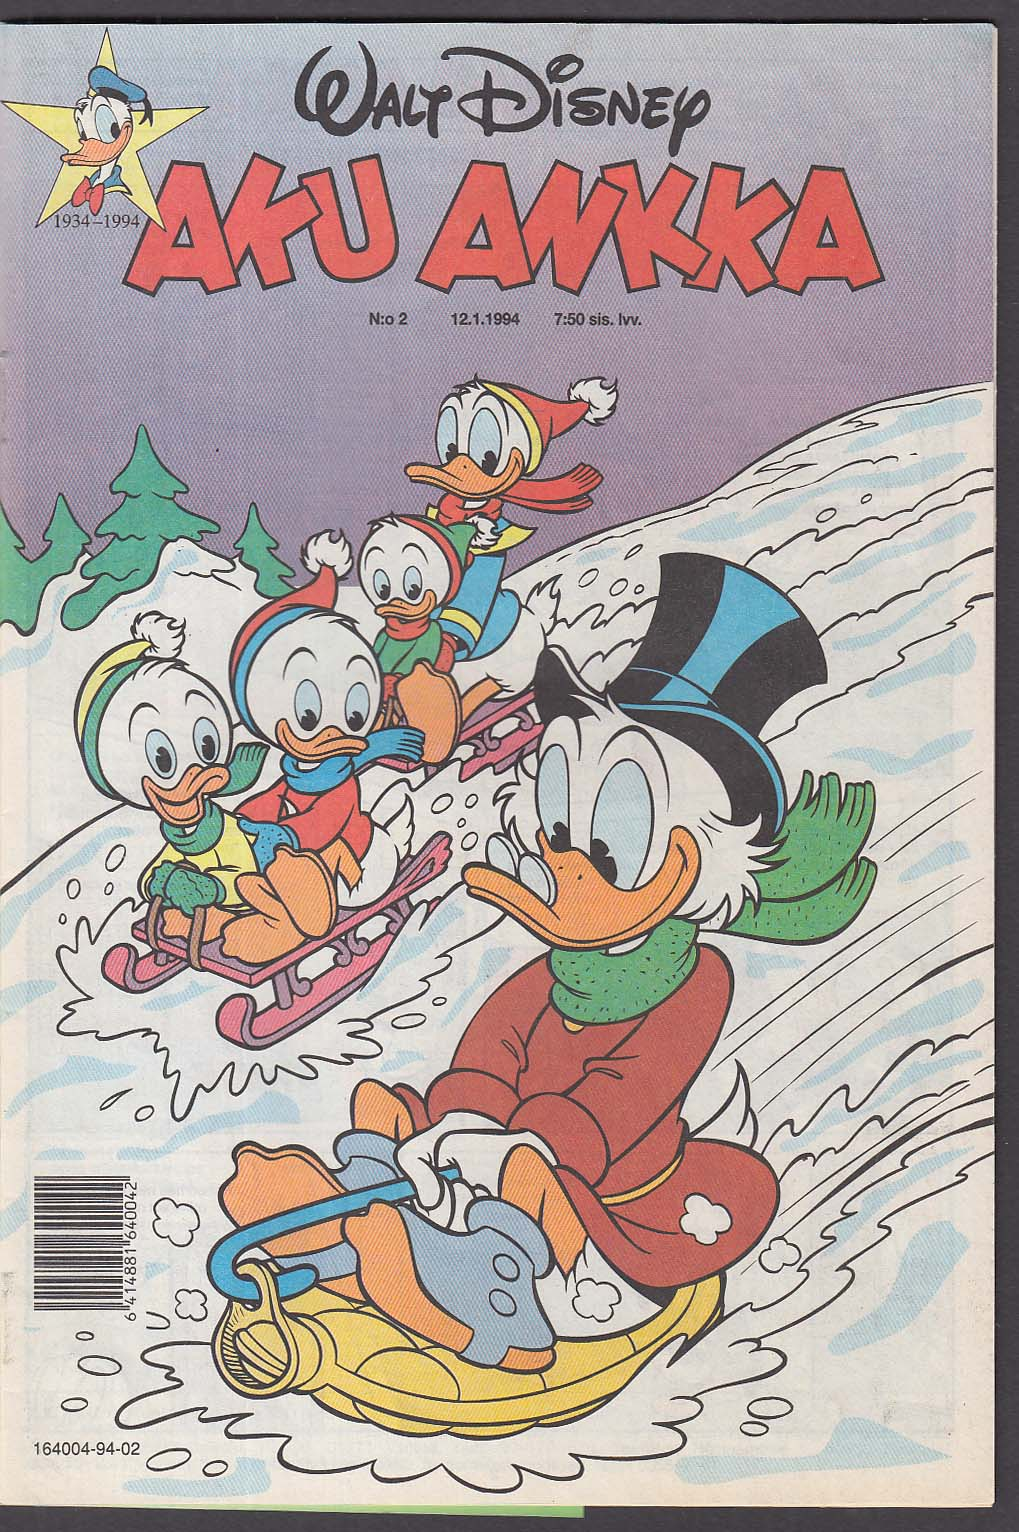 Walt Disney AKU ANKKA Finnish-language Donald Duck comic book #2 12.1 1994